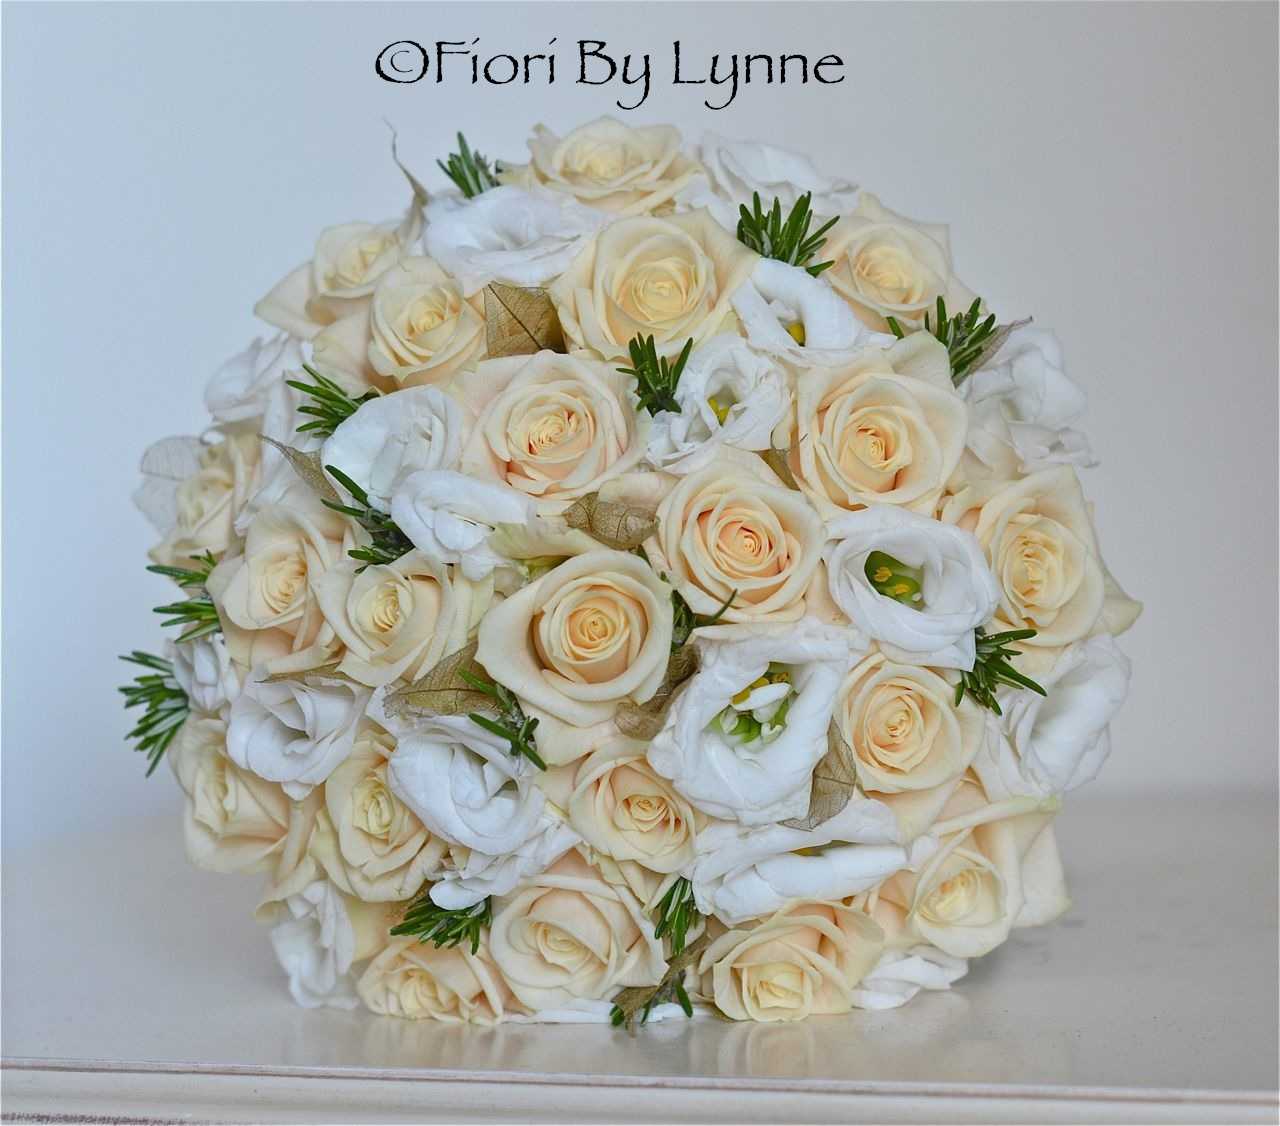 Gold Wedding Flowers: Wedding Flowers Blog: Louise's Cream And Gold Wedding